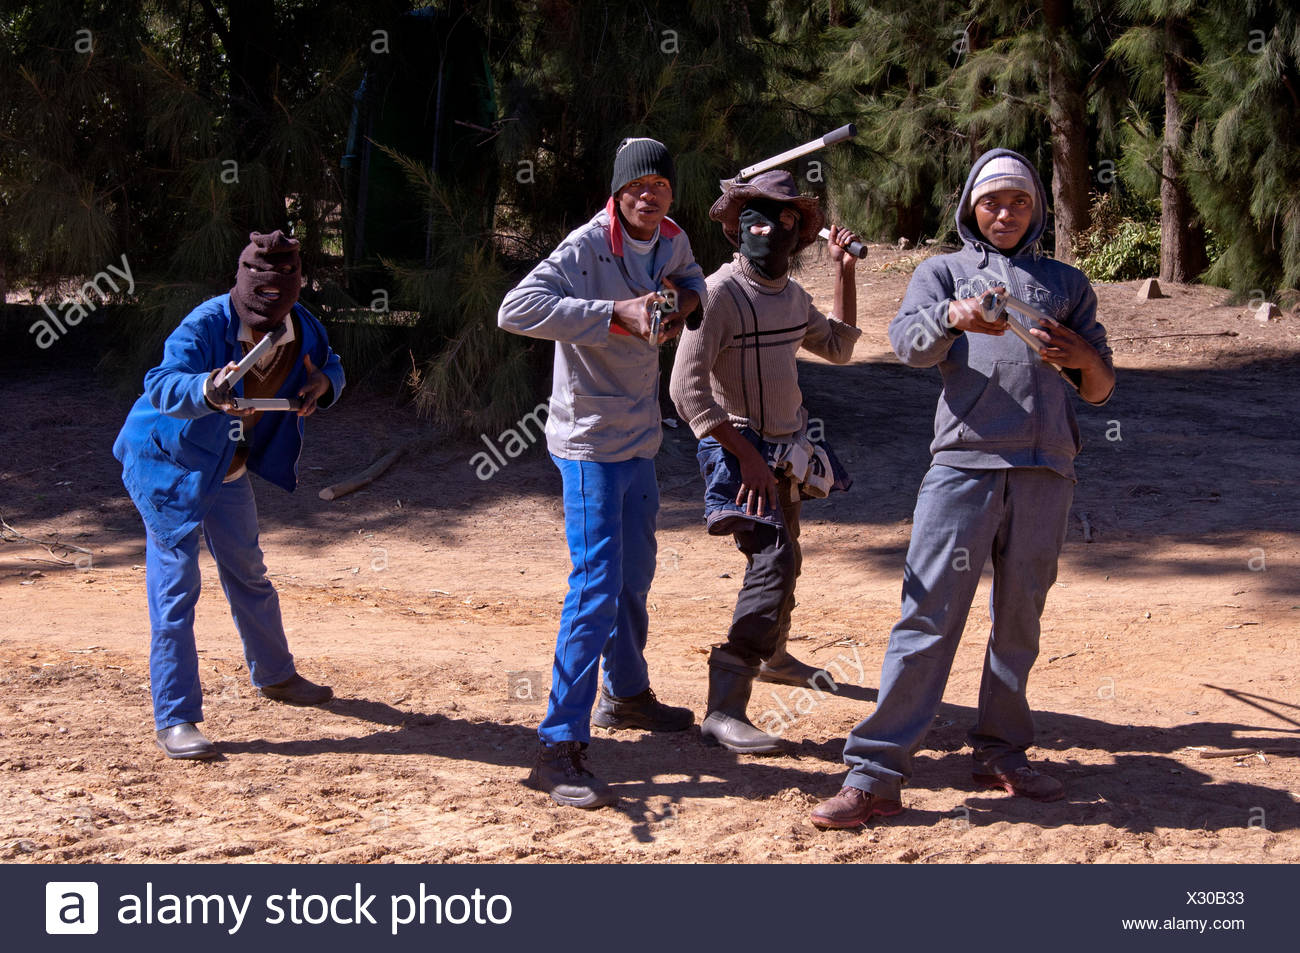 Partially masked men armed with tools in a threatening posture, Clanwilliam, Western Cape Province, South Africa, Africa - Stock Image